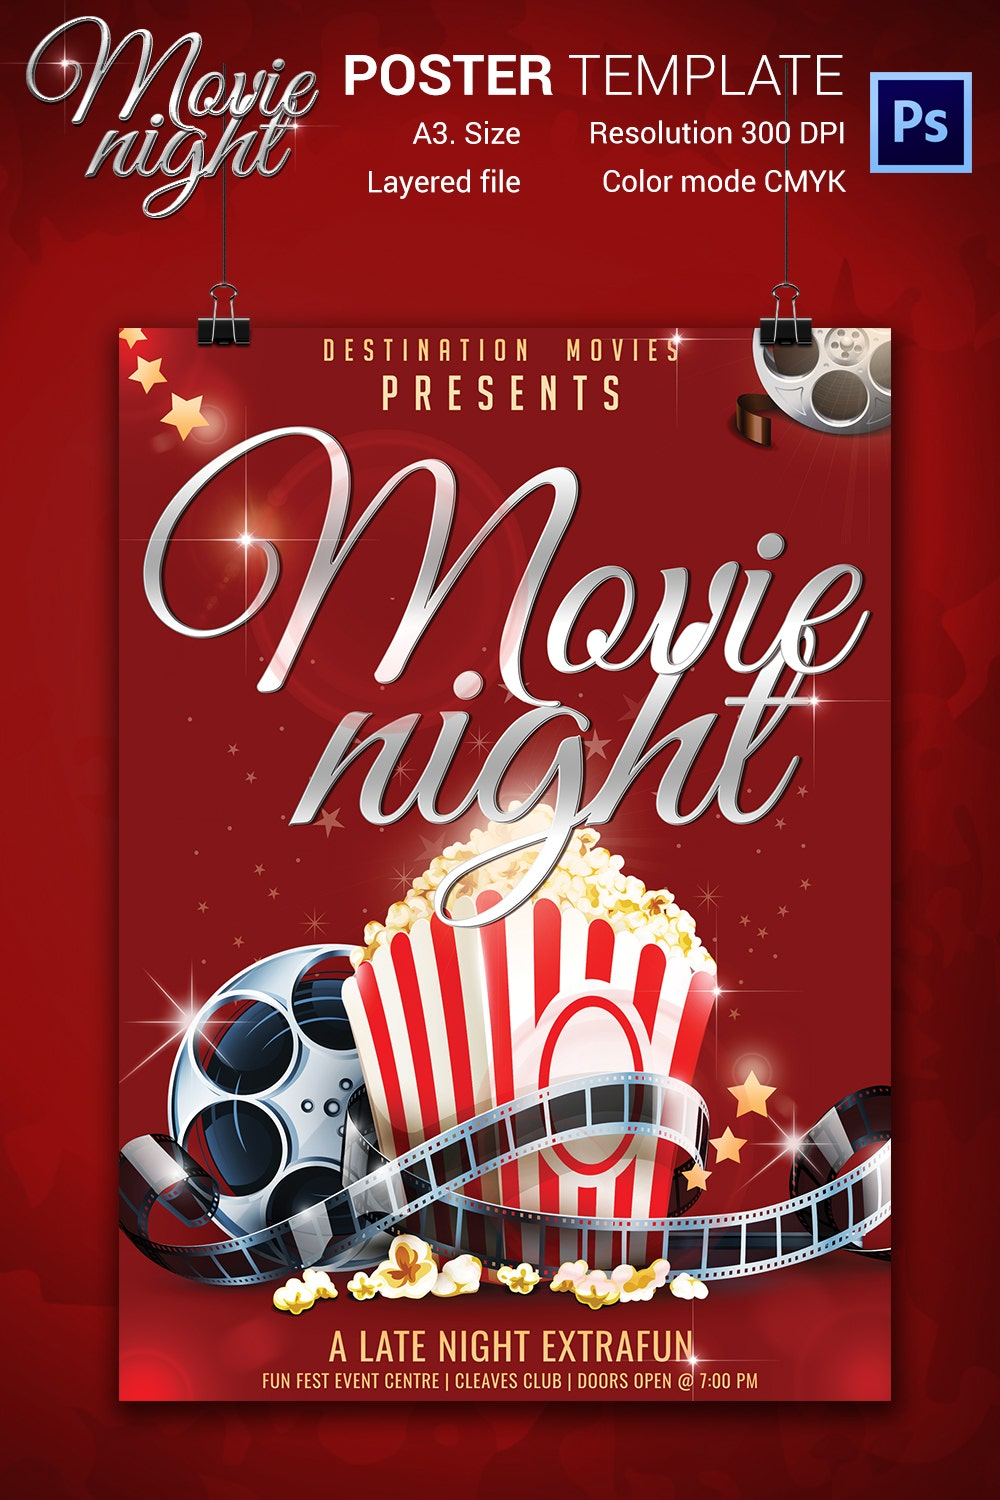 Poster design download - Elegant Movie Night Poster Template